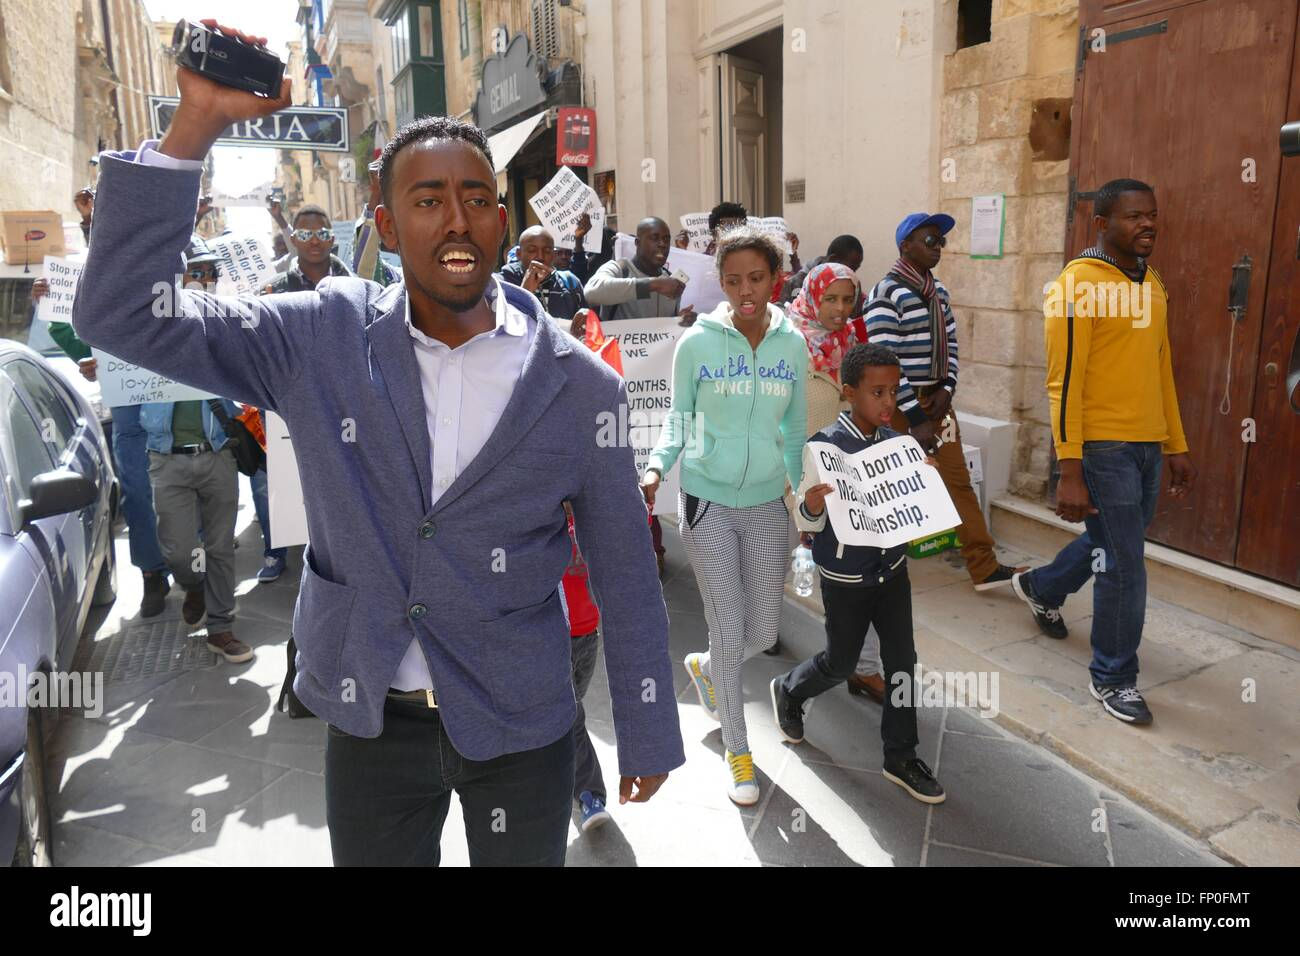 Valletta, Malta. 16 March, 2016. Ahmed Nuur Ibrahim, a Somali journalist, leads a peaceful protest through the streets - Stock Image